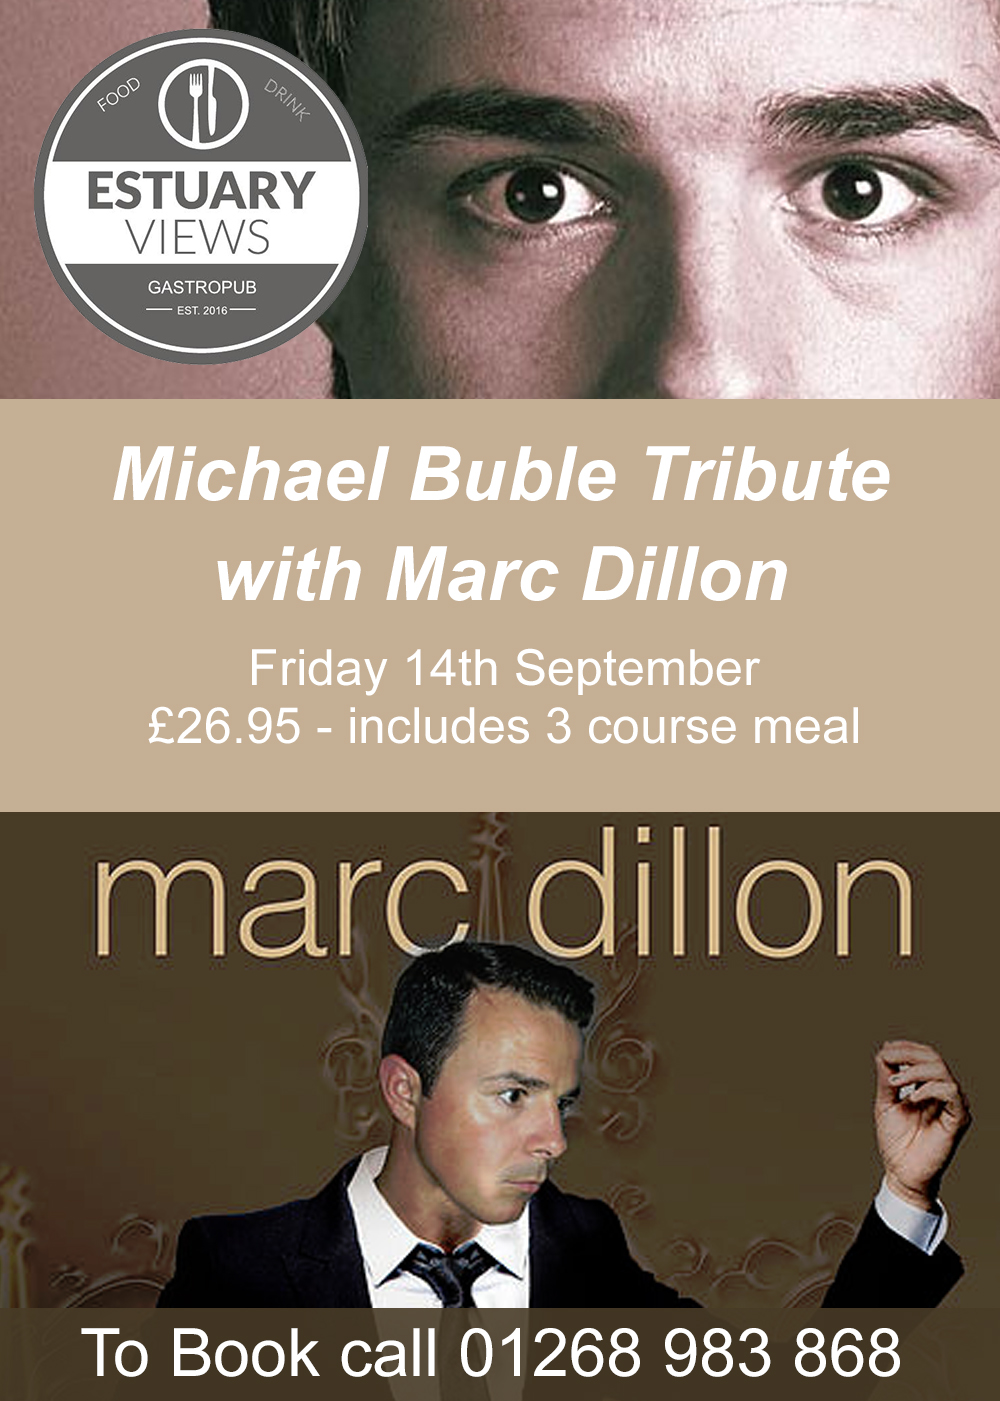 Michael Buble Tribute with Marc Dillon